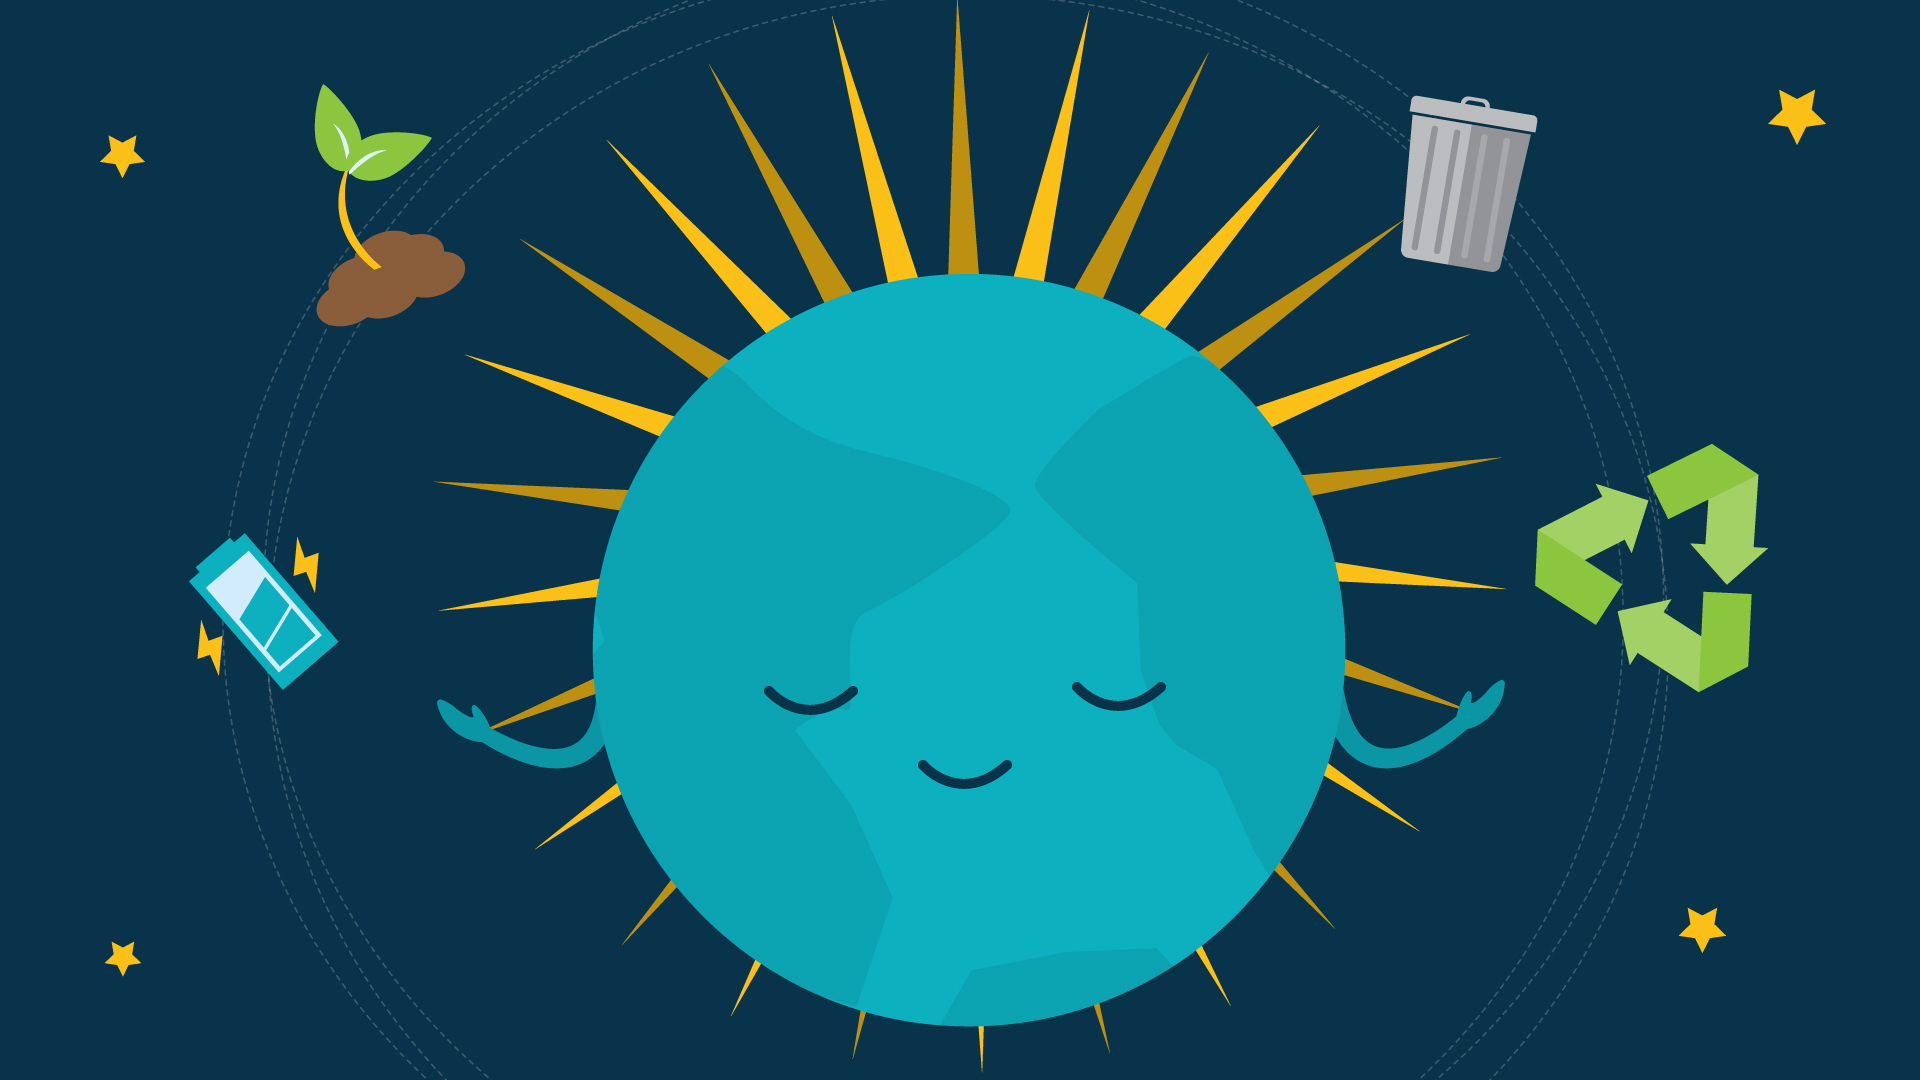 Illustration of planet earth with a content smiley face, and icons of sustainable recycling in orbit